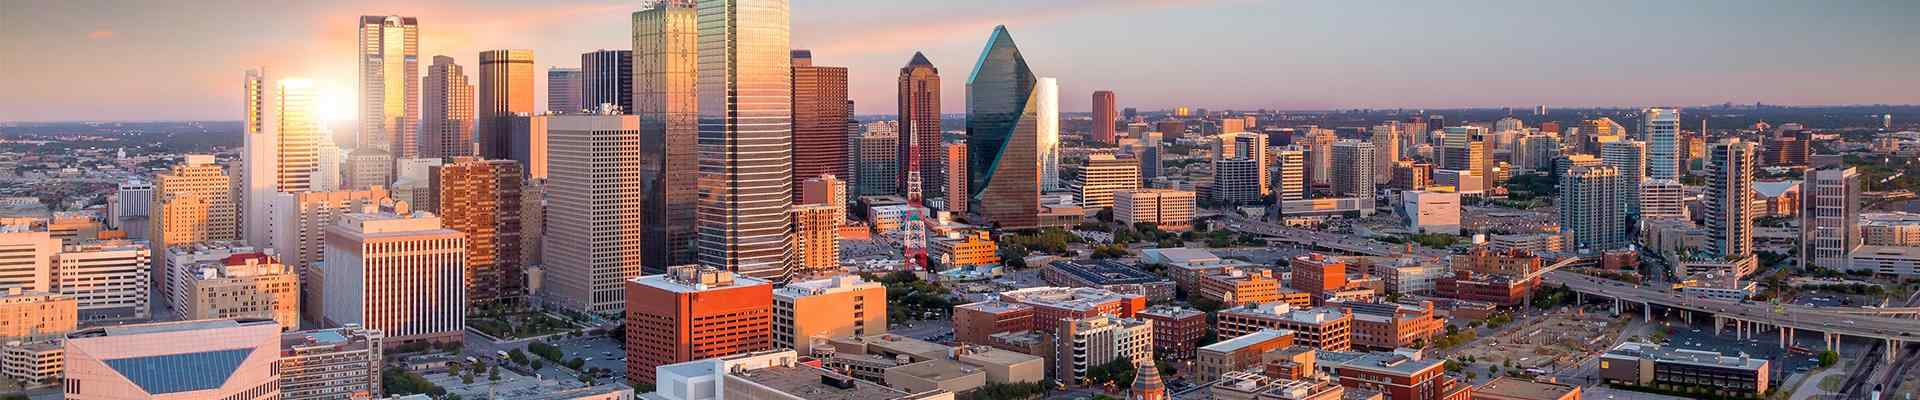 skyline view of dallas texas